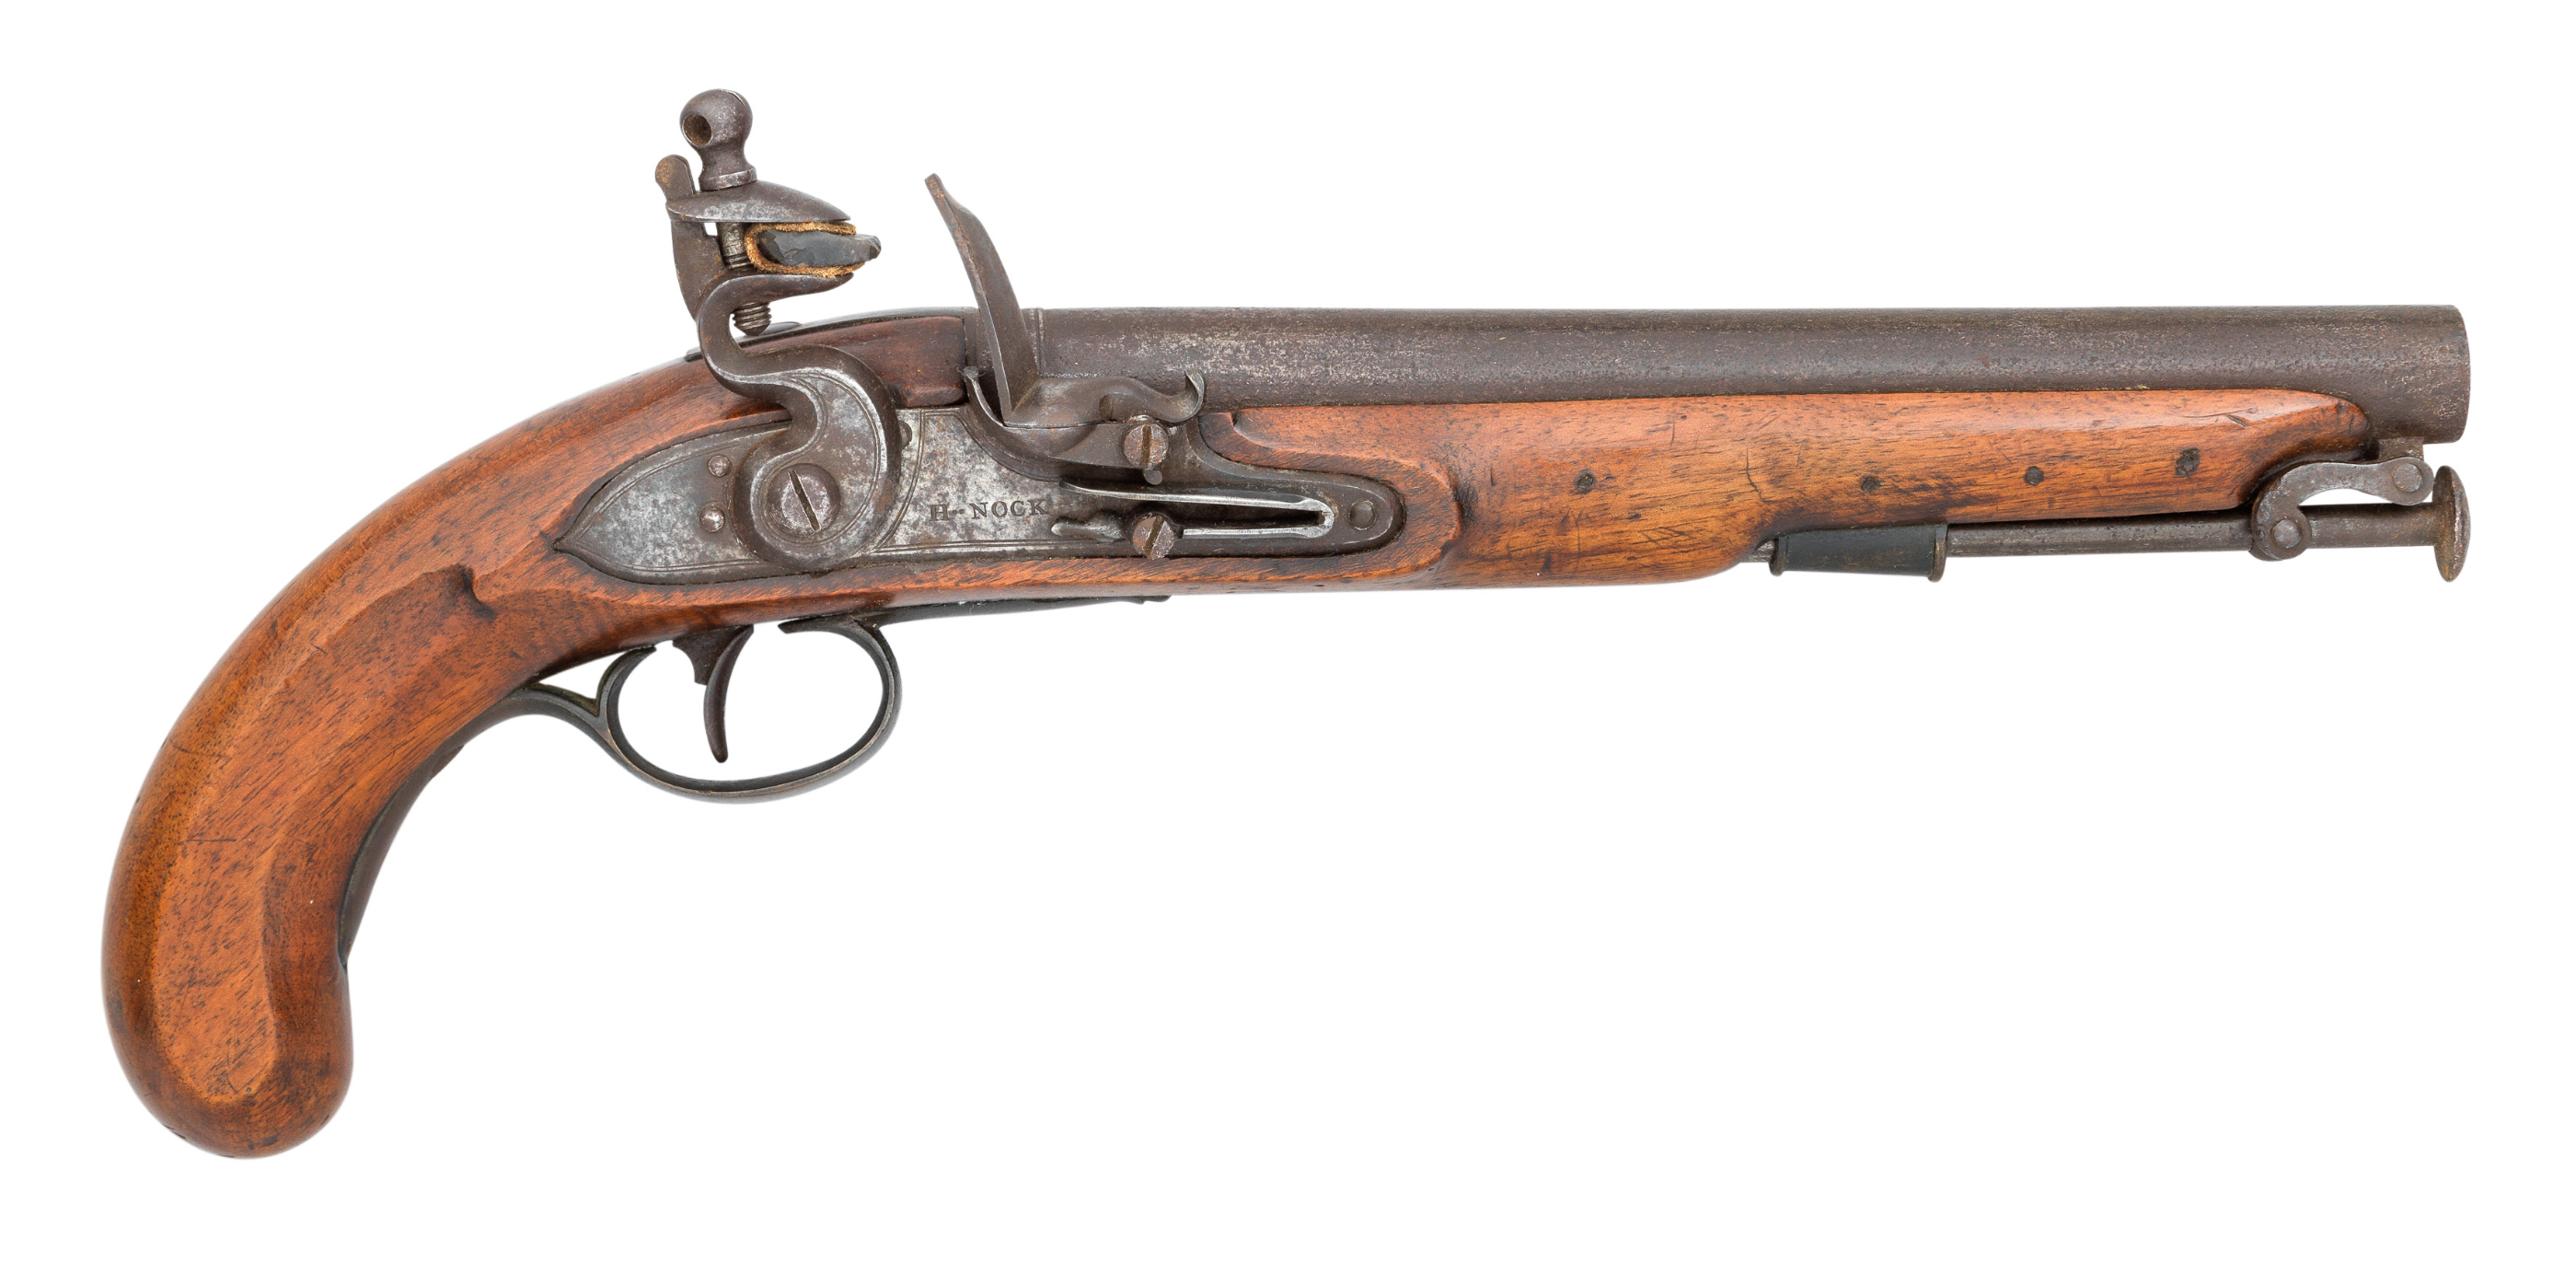 A .650 CALIBRE FLINTLOCK PISTOL OF DRAGOON TYPE^ BY H NOCK^ TOWER PRIVATE PROOF MARKS^ CIRCA 1800